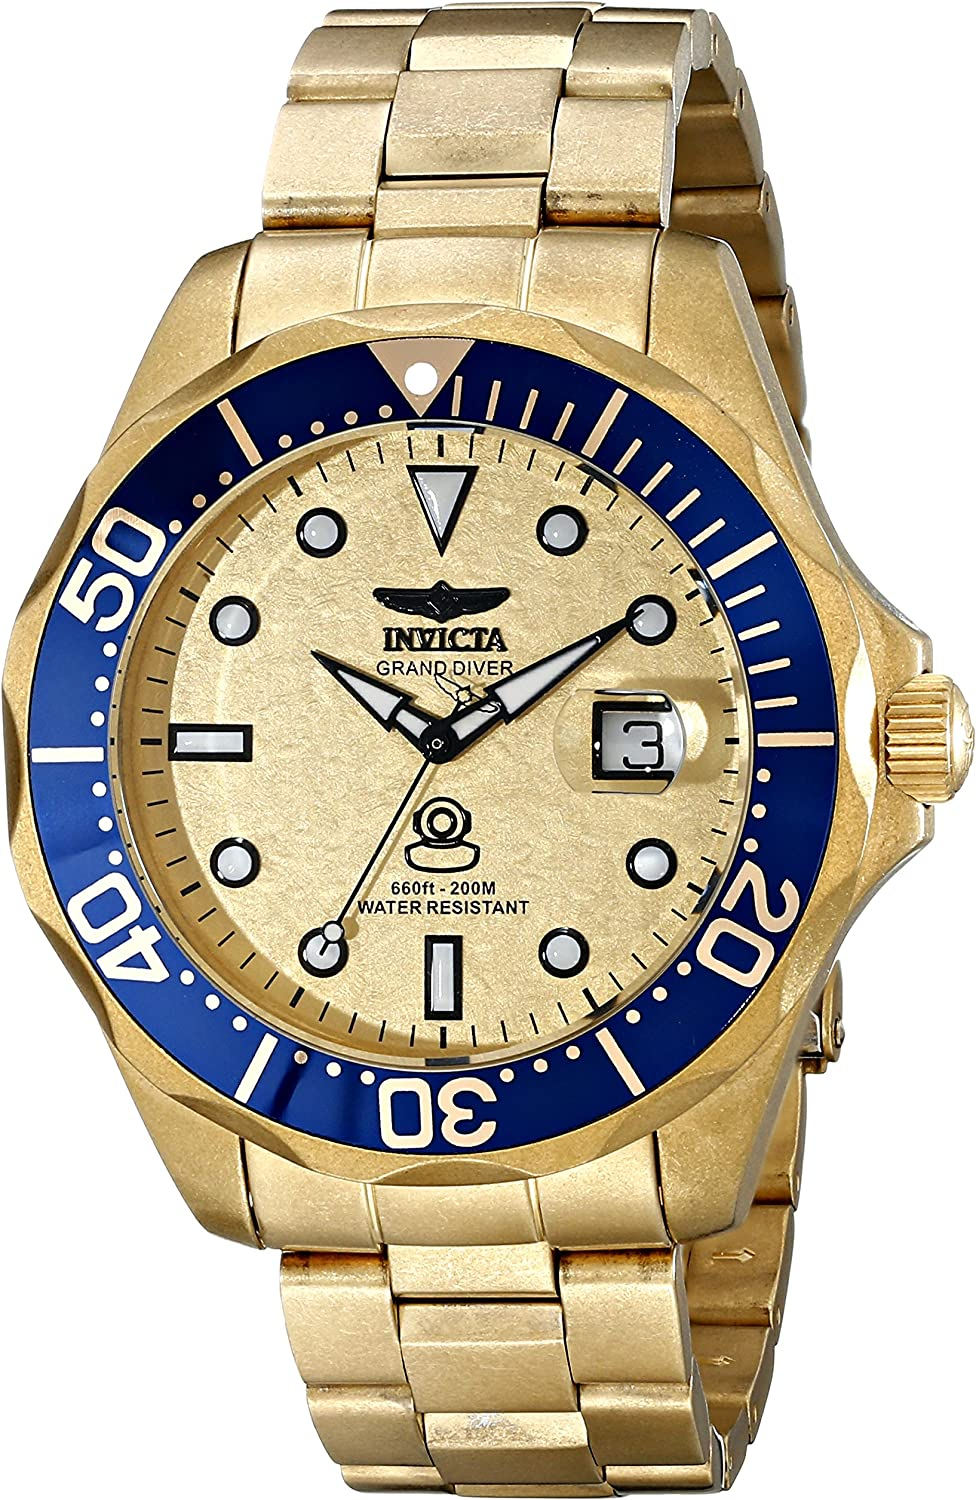 Invicta Men s 17108 Pro Diver Analog Display Swiss Quartz Gold Watch